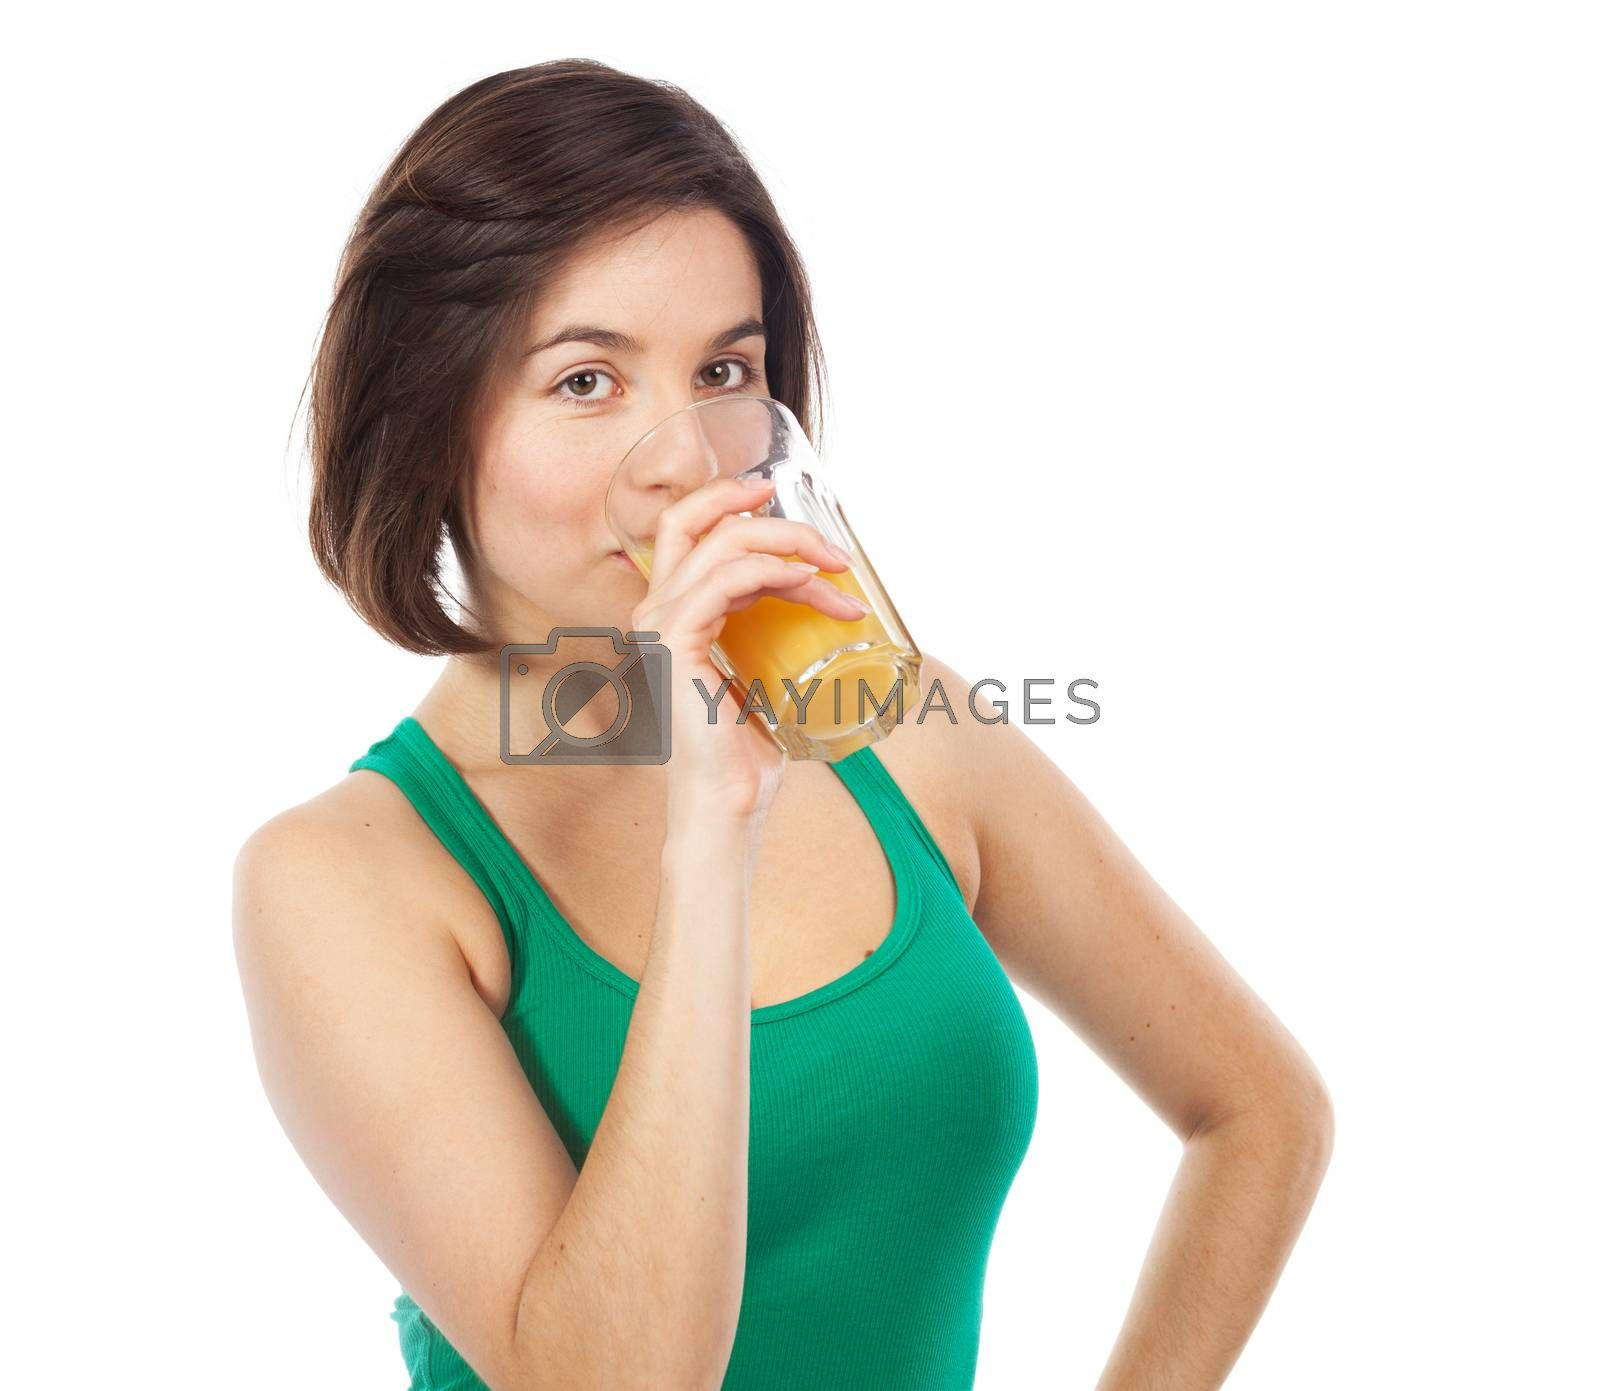 Portrait of a young woman drinking an orange juice, isolated on white